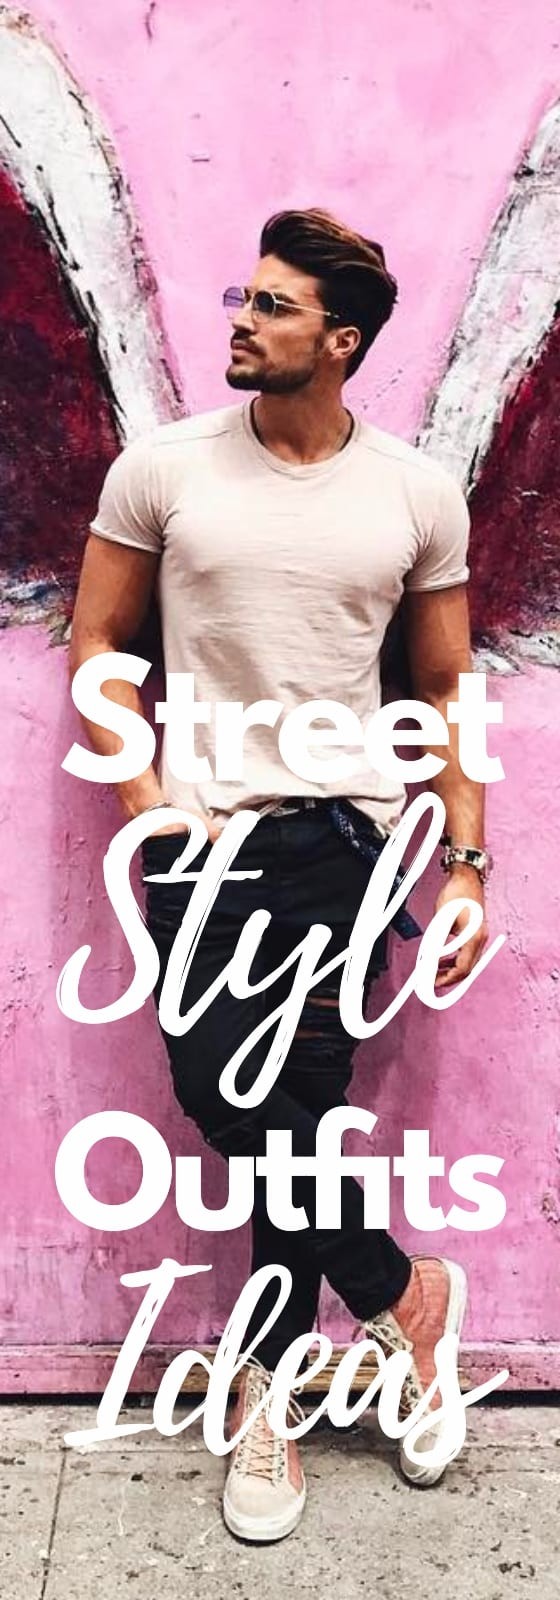 10 Street Style Outfit Ideas For Men To Choose From